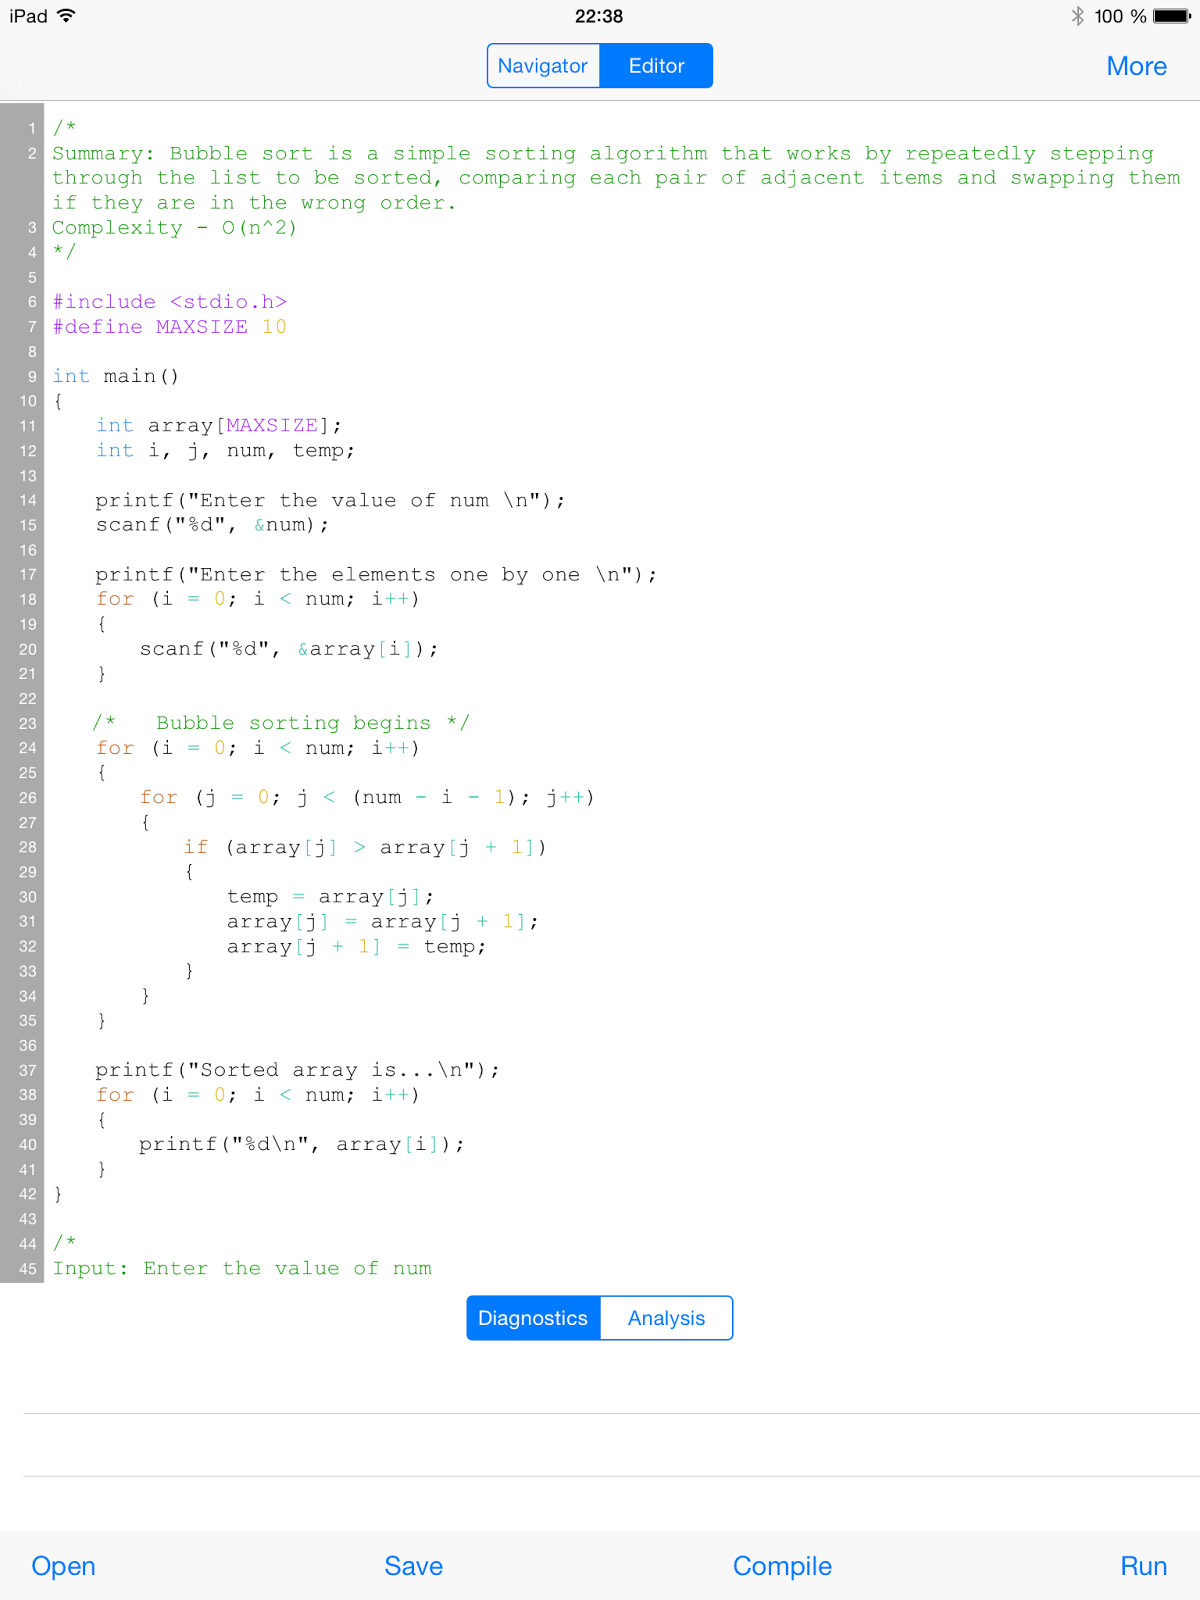 CppDroid - C/C++ IDE for Android